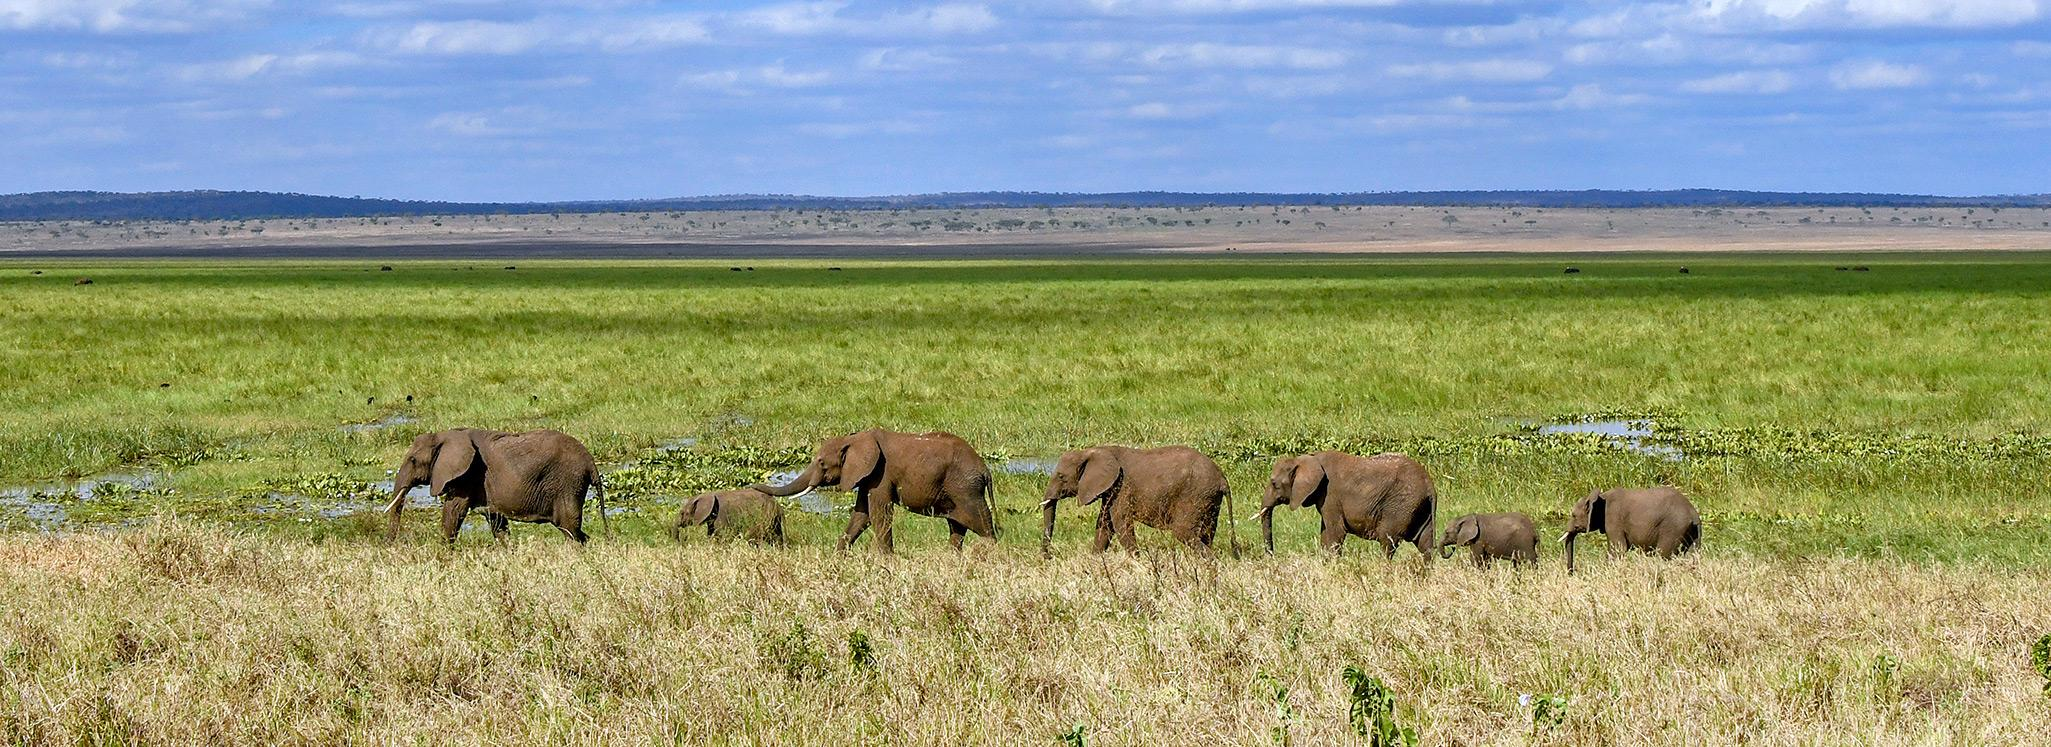 An elephant herd walking from right two left in line in the Silale Swamps, Tanzania